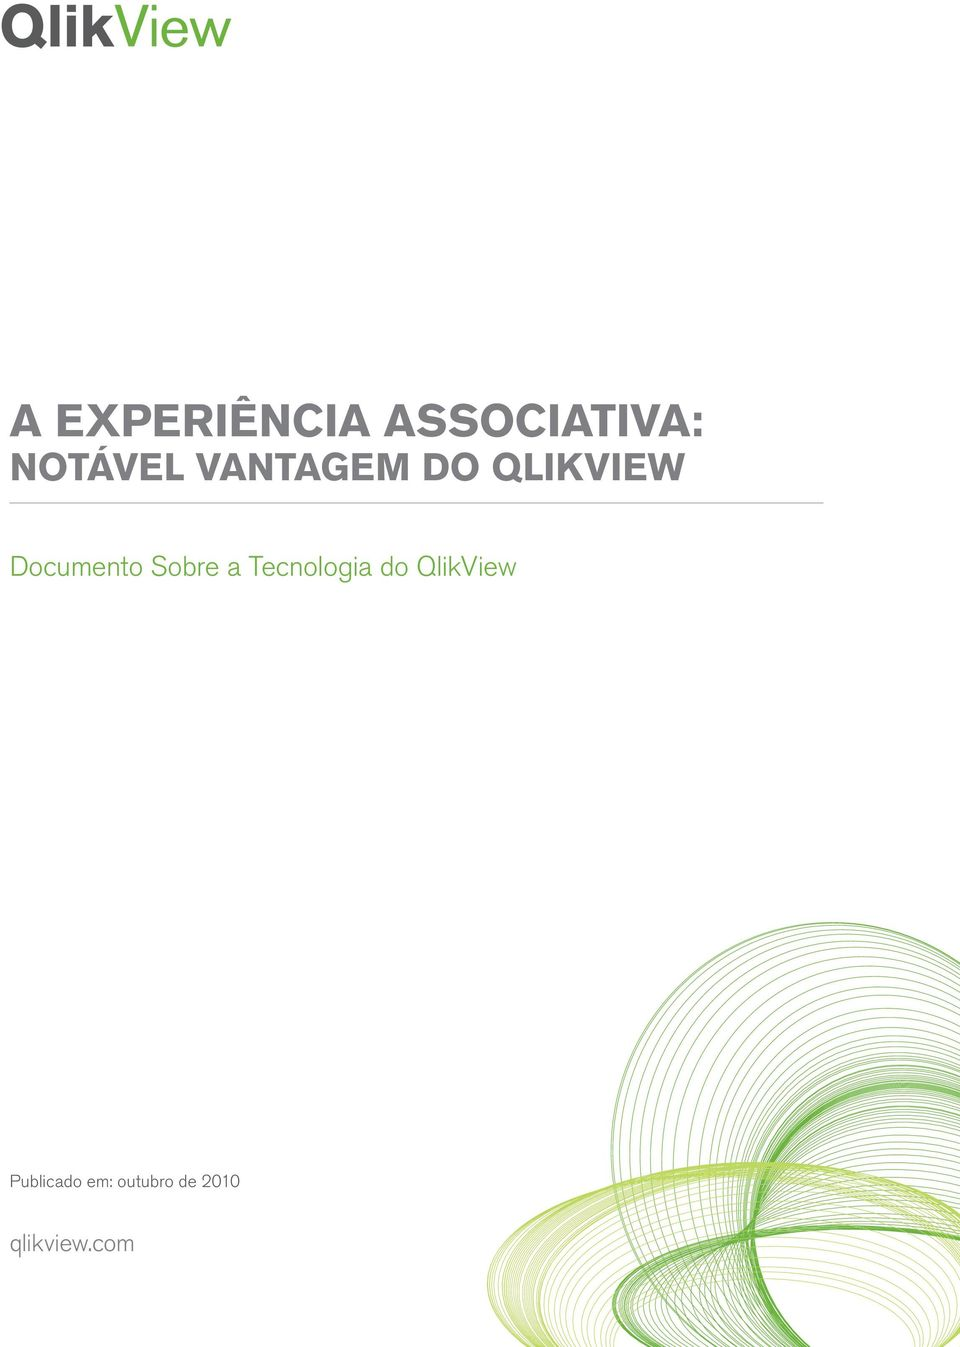 Sobre a Tecnologia do QlikView